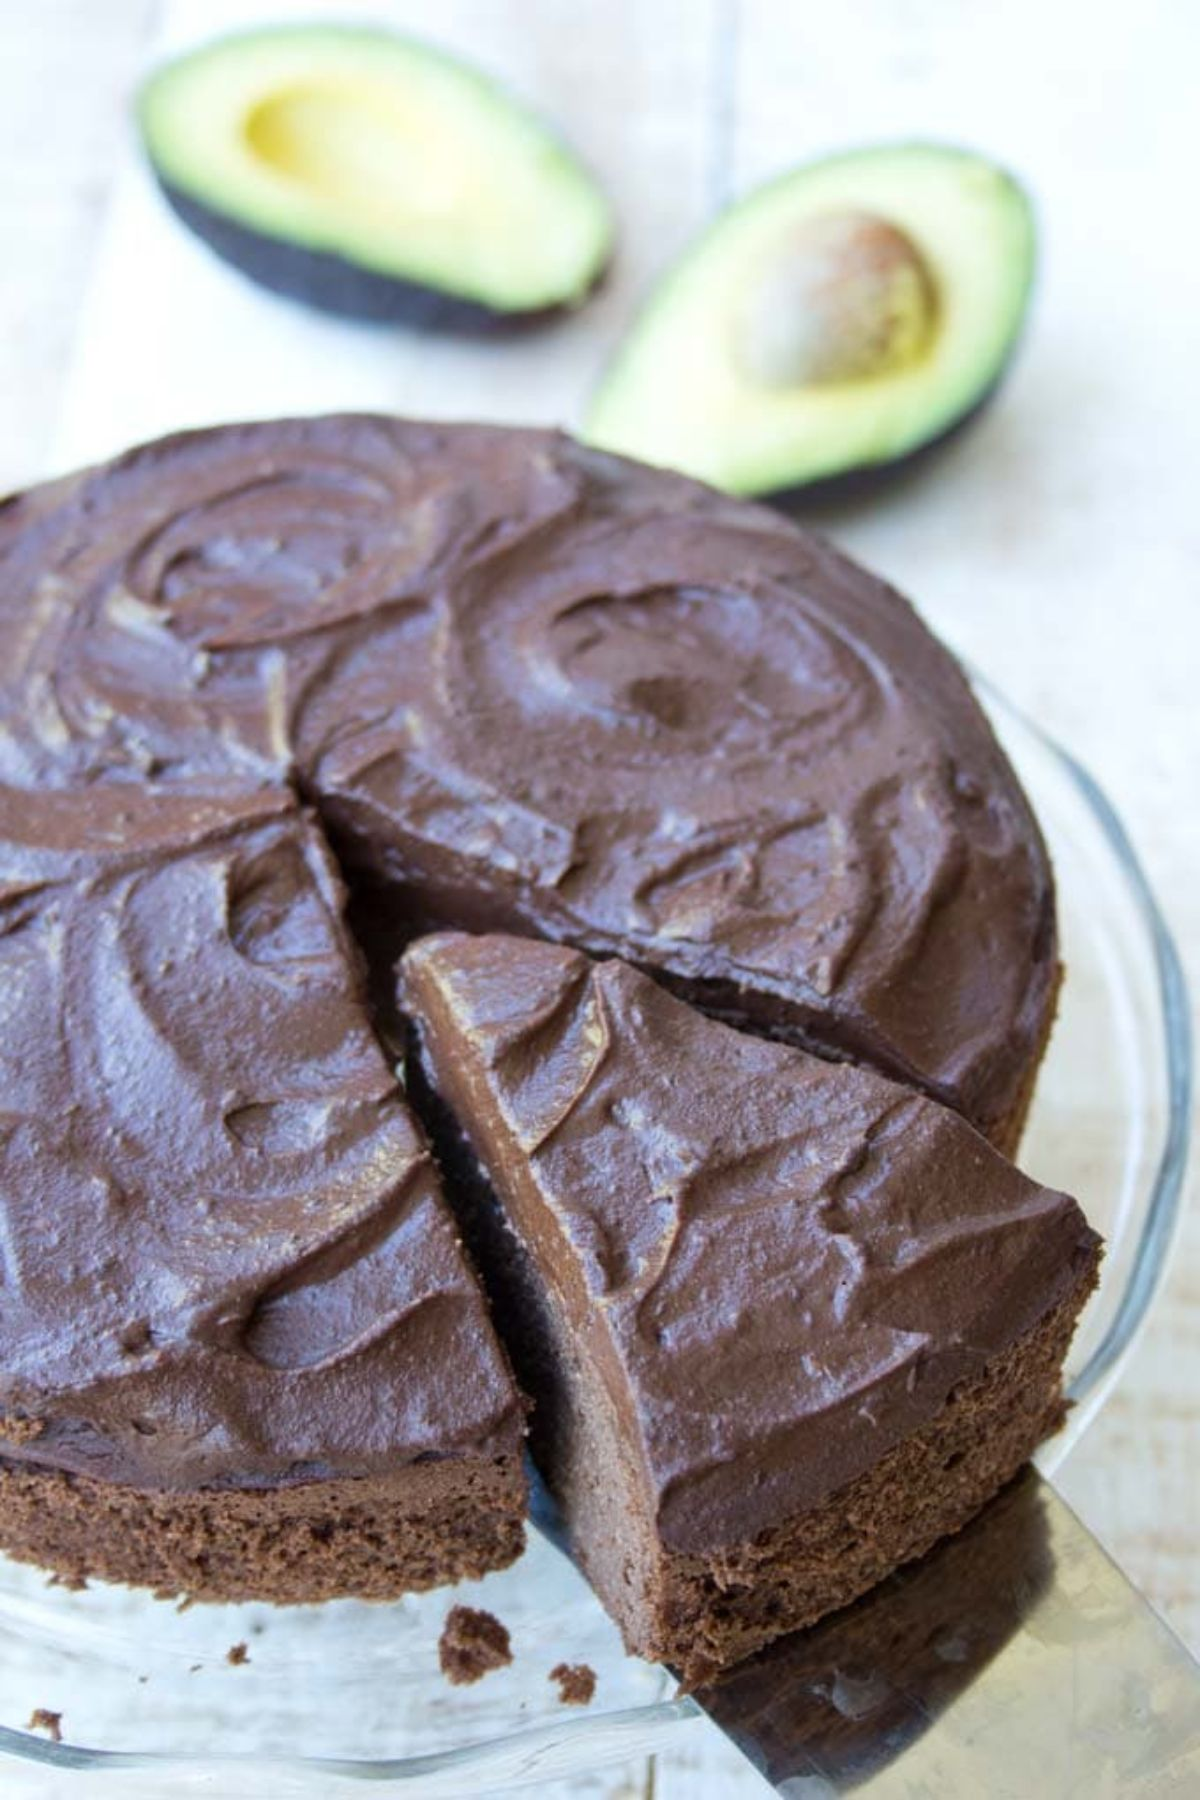 On a glass cake stand is a chocolate ckae with one slice cut out of it. Behind are 2 avocado halves